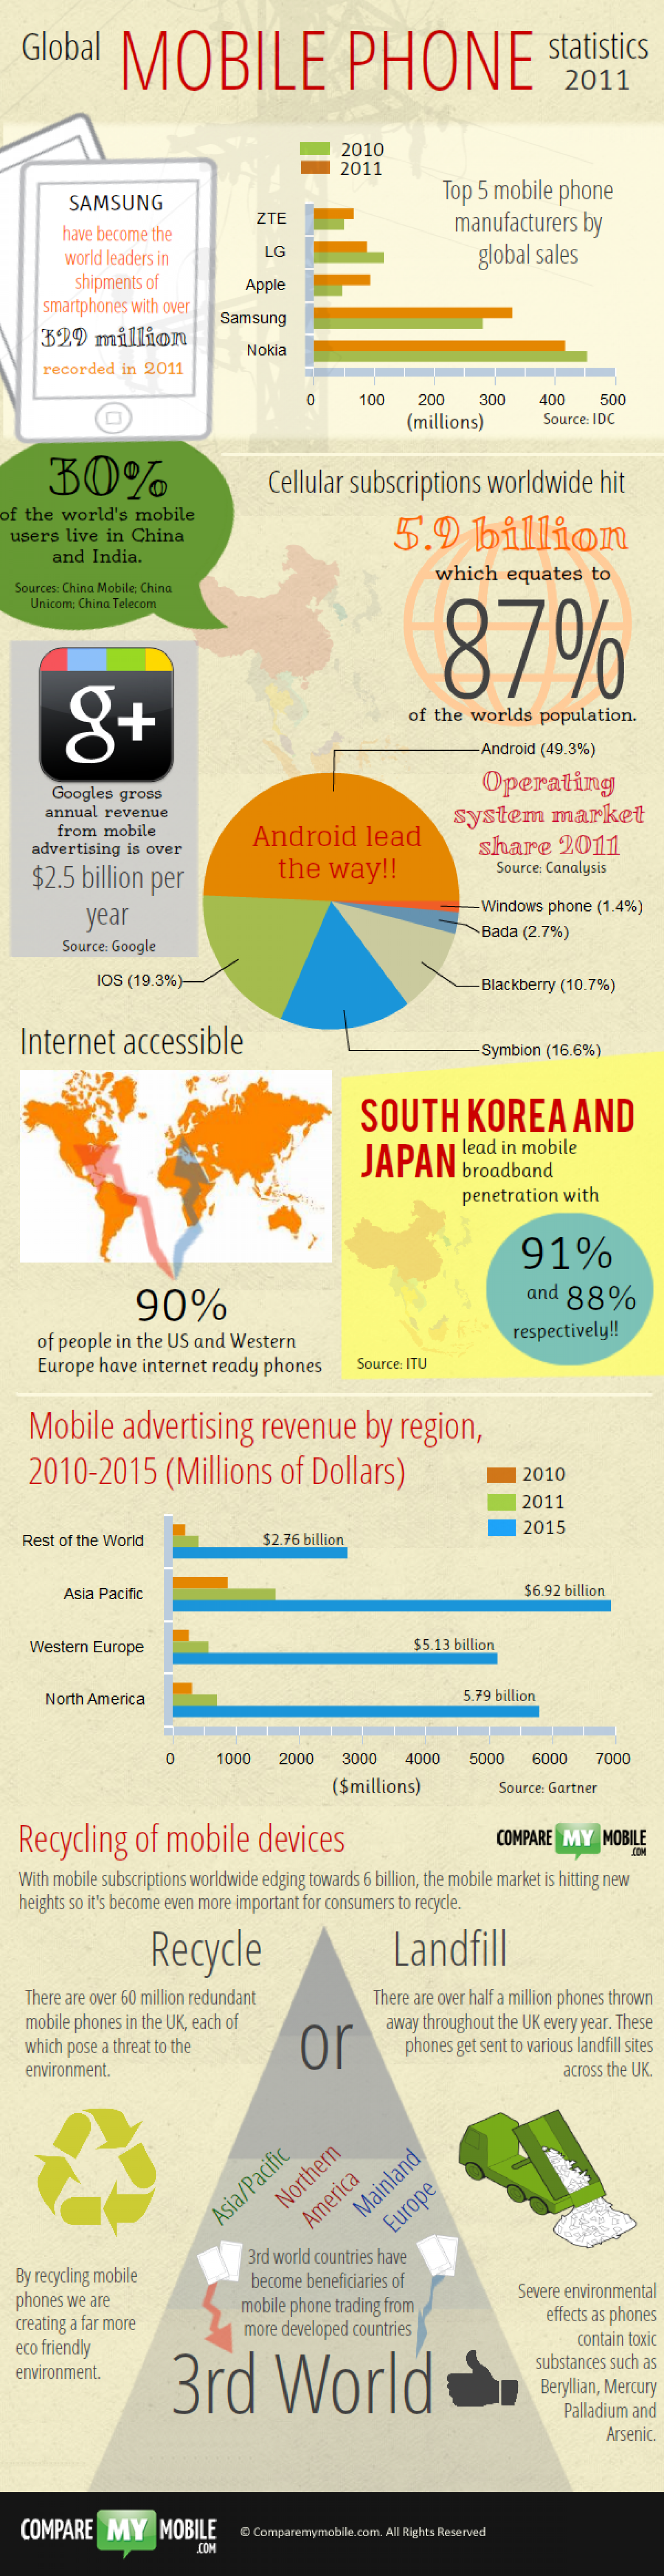 Global Mobile Phone Statistics 2011 Infographic